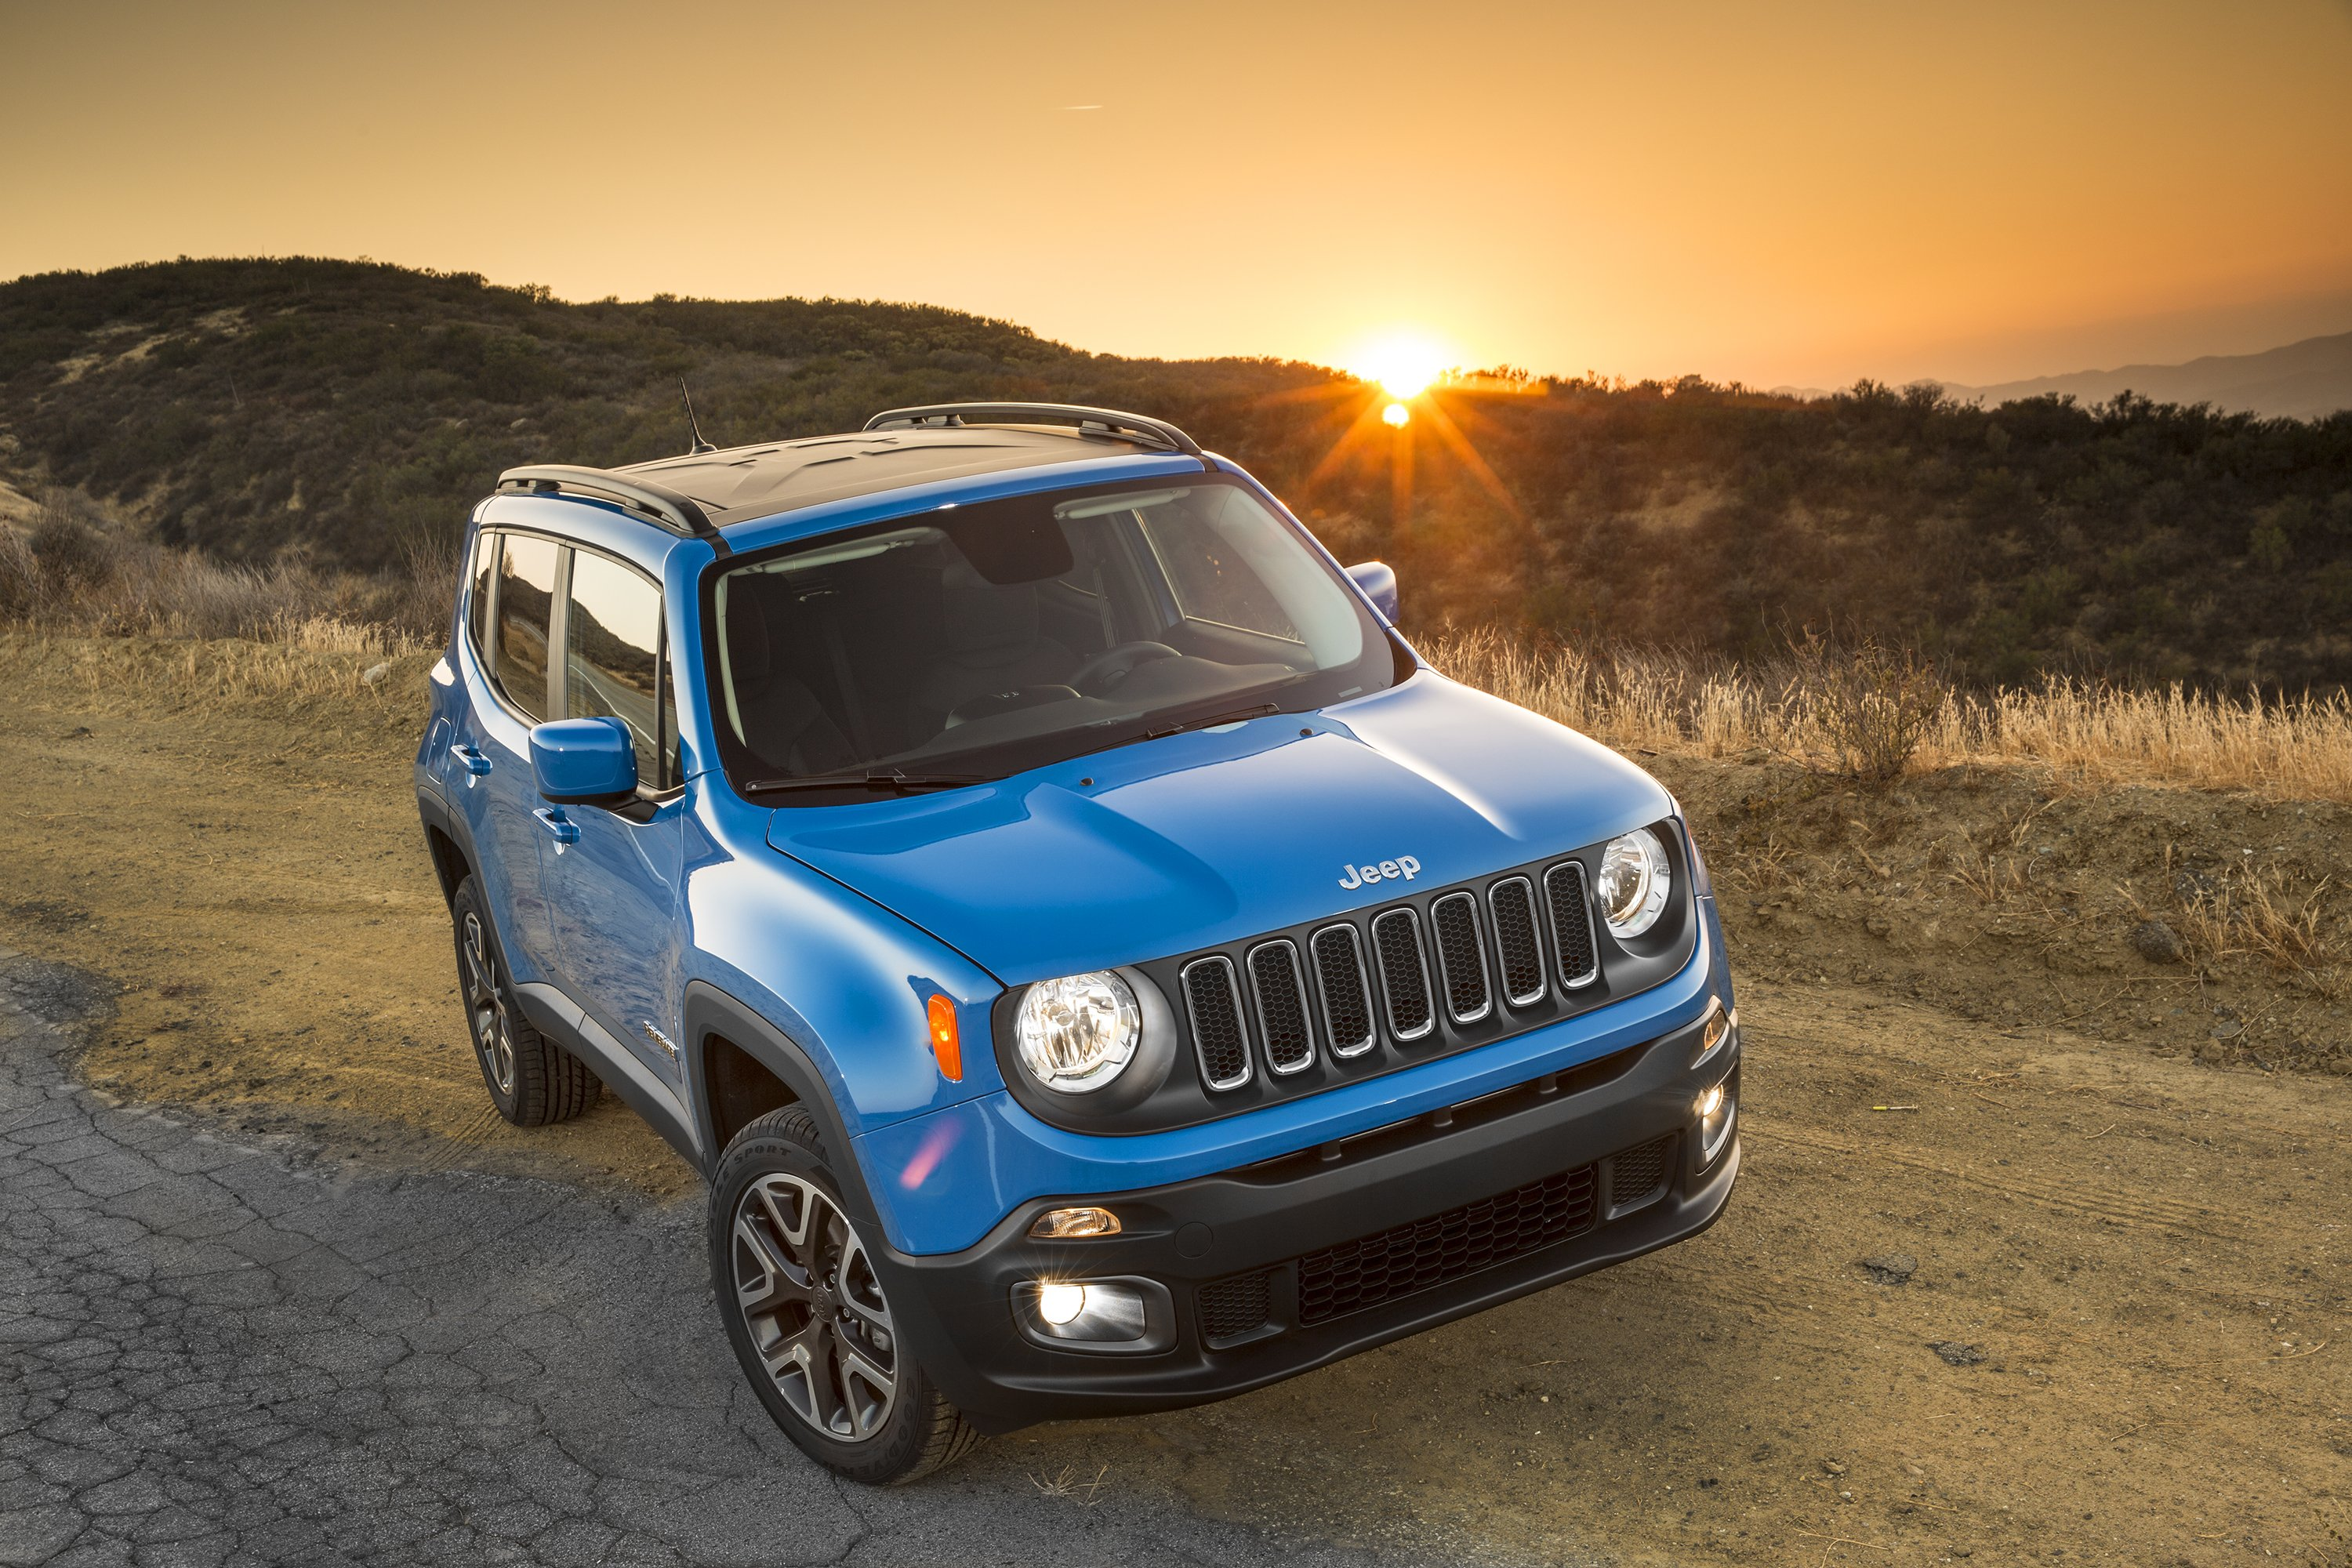 2015 jeep renegade latitude suv 4x4 wallpaper 3000x2000 618801 wallpaperup. Black Bedroom Furniture Sets. Home Design Ideas